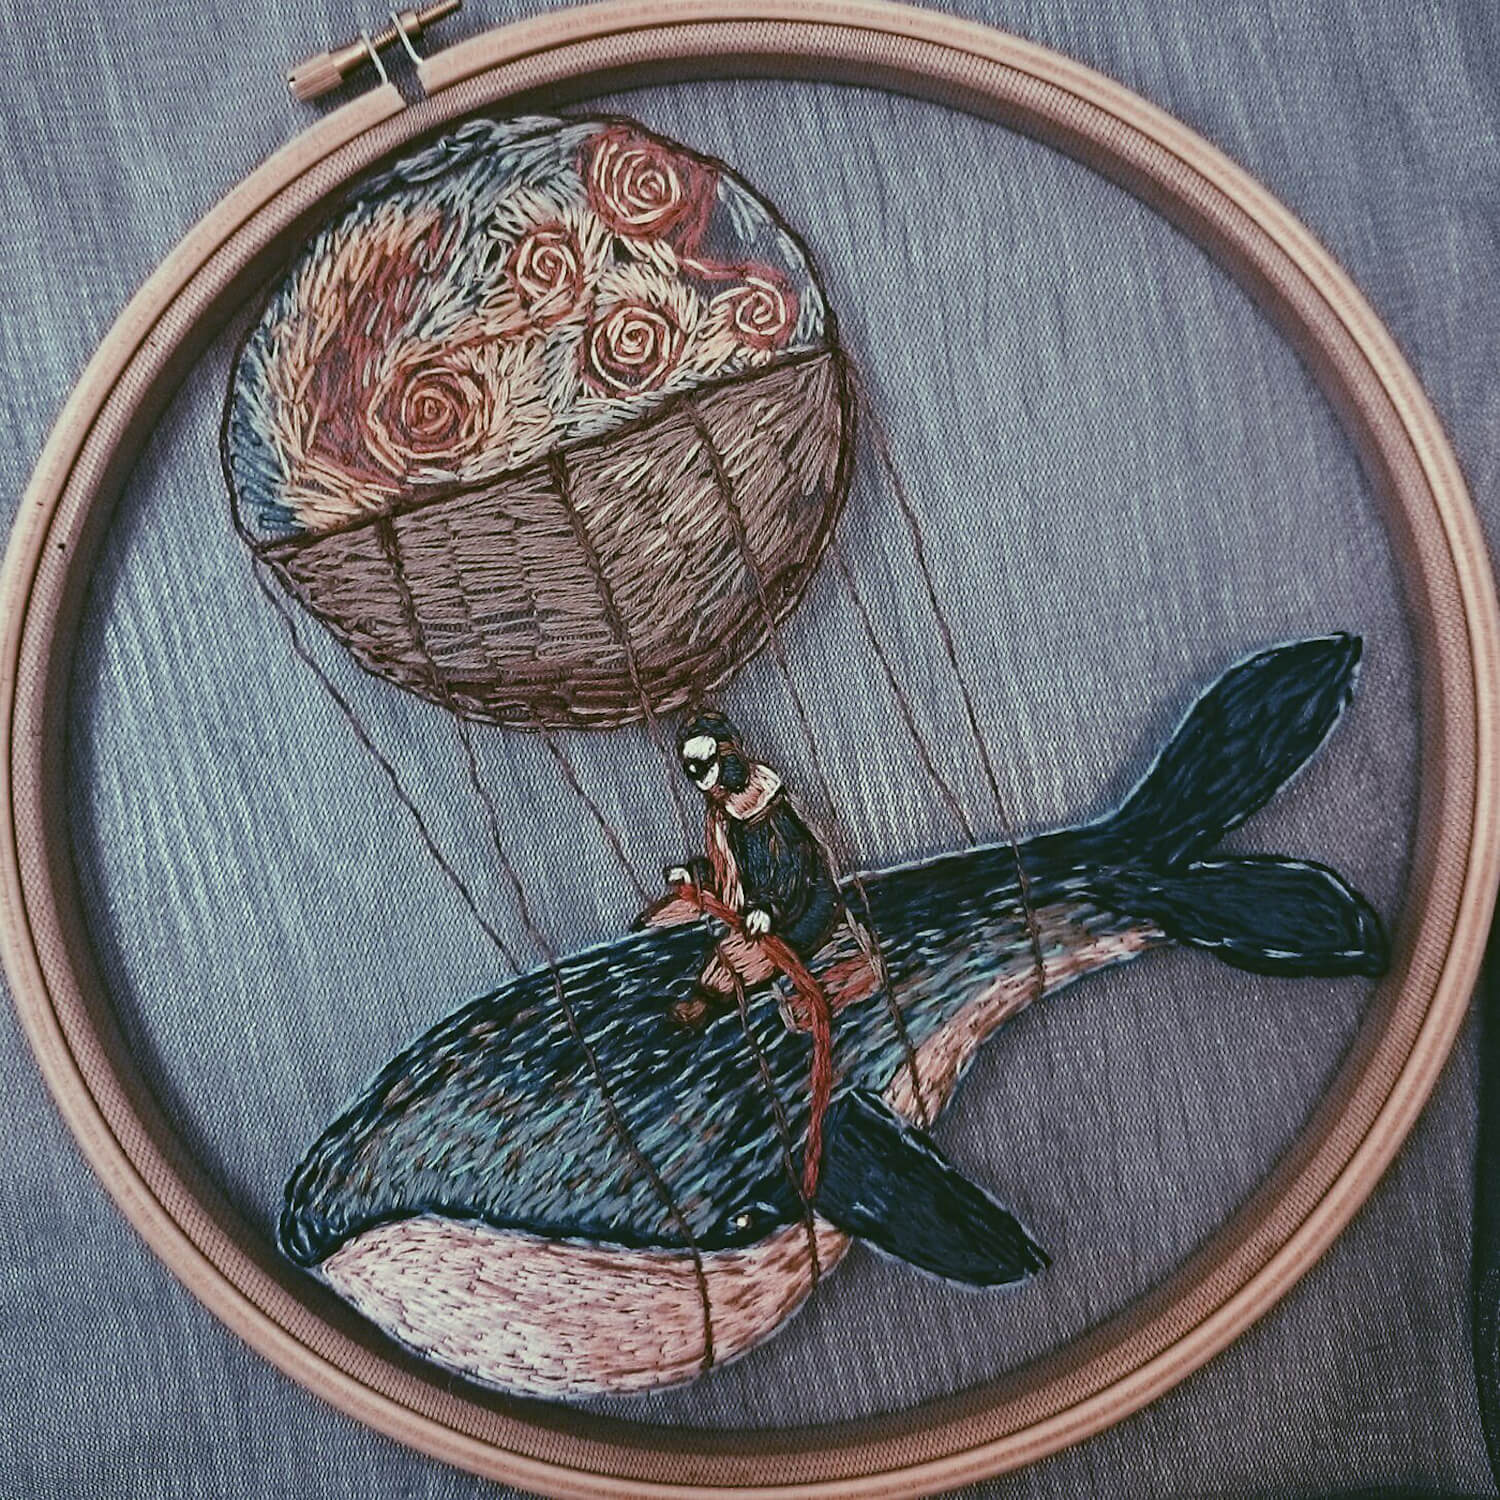 Fantastical flying whale embroidery